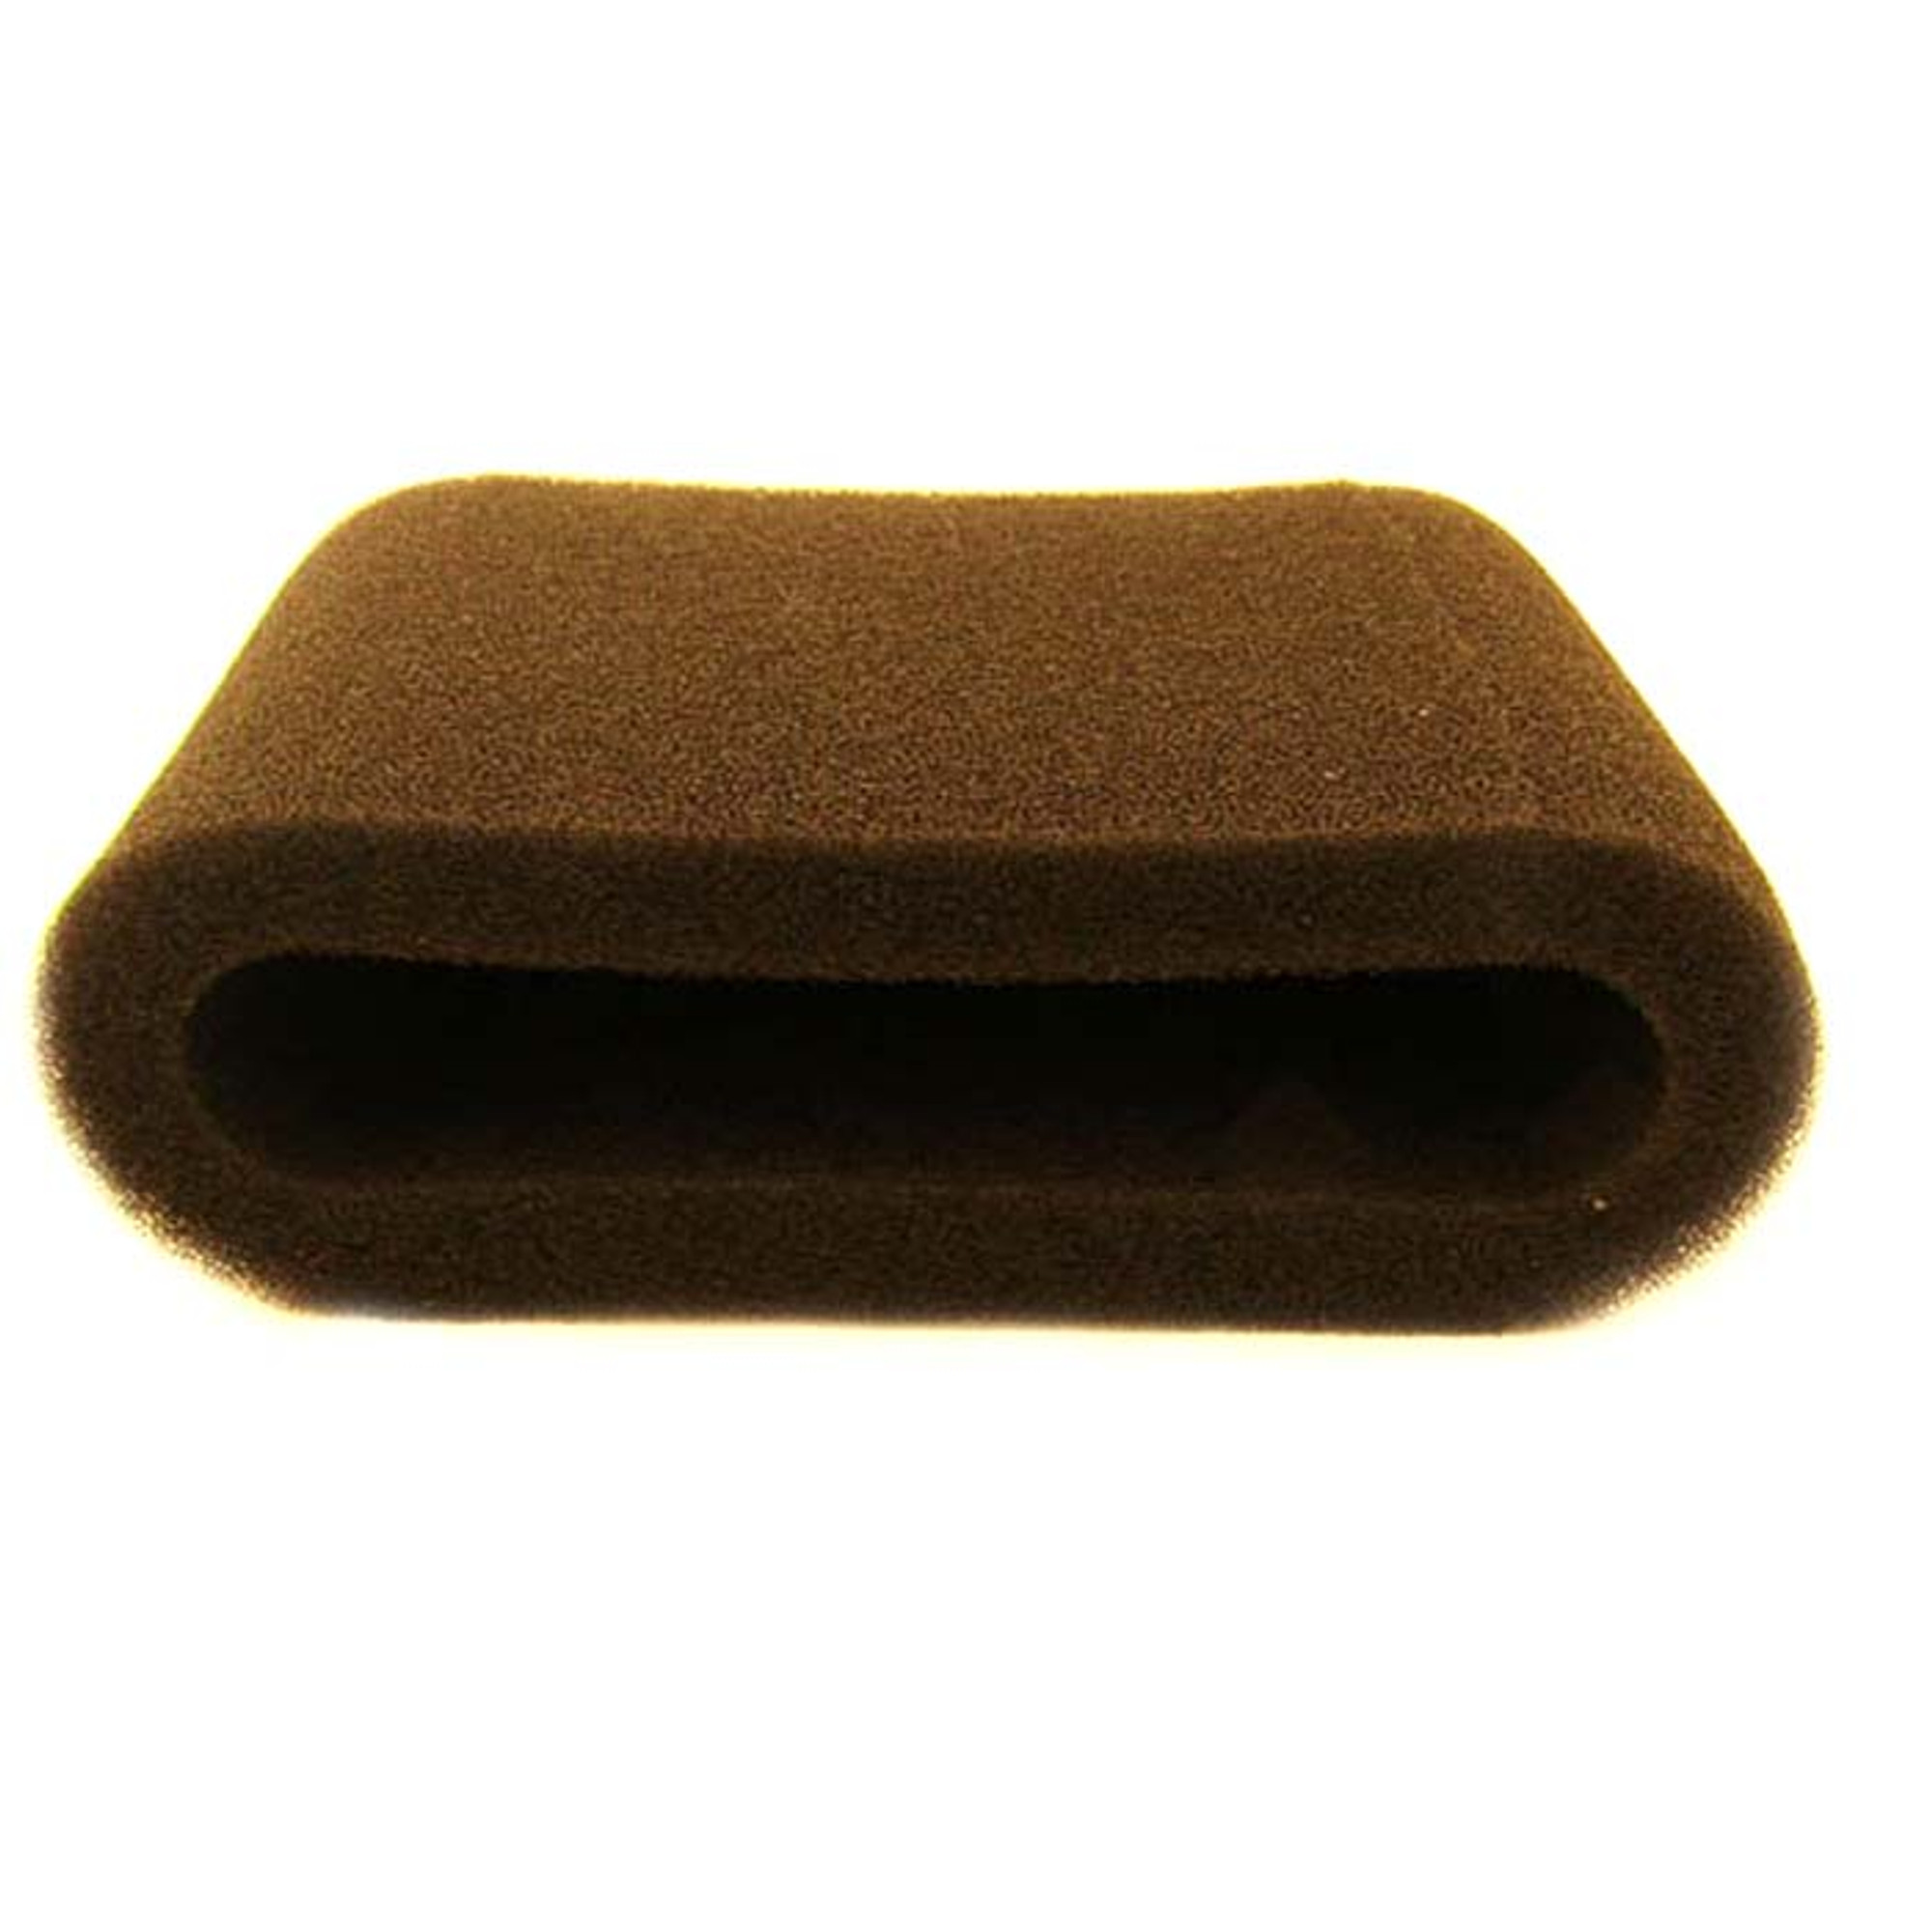 Buy Bissell Upright Vacuum Cleaner Foam Filter For Upper